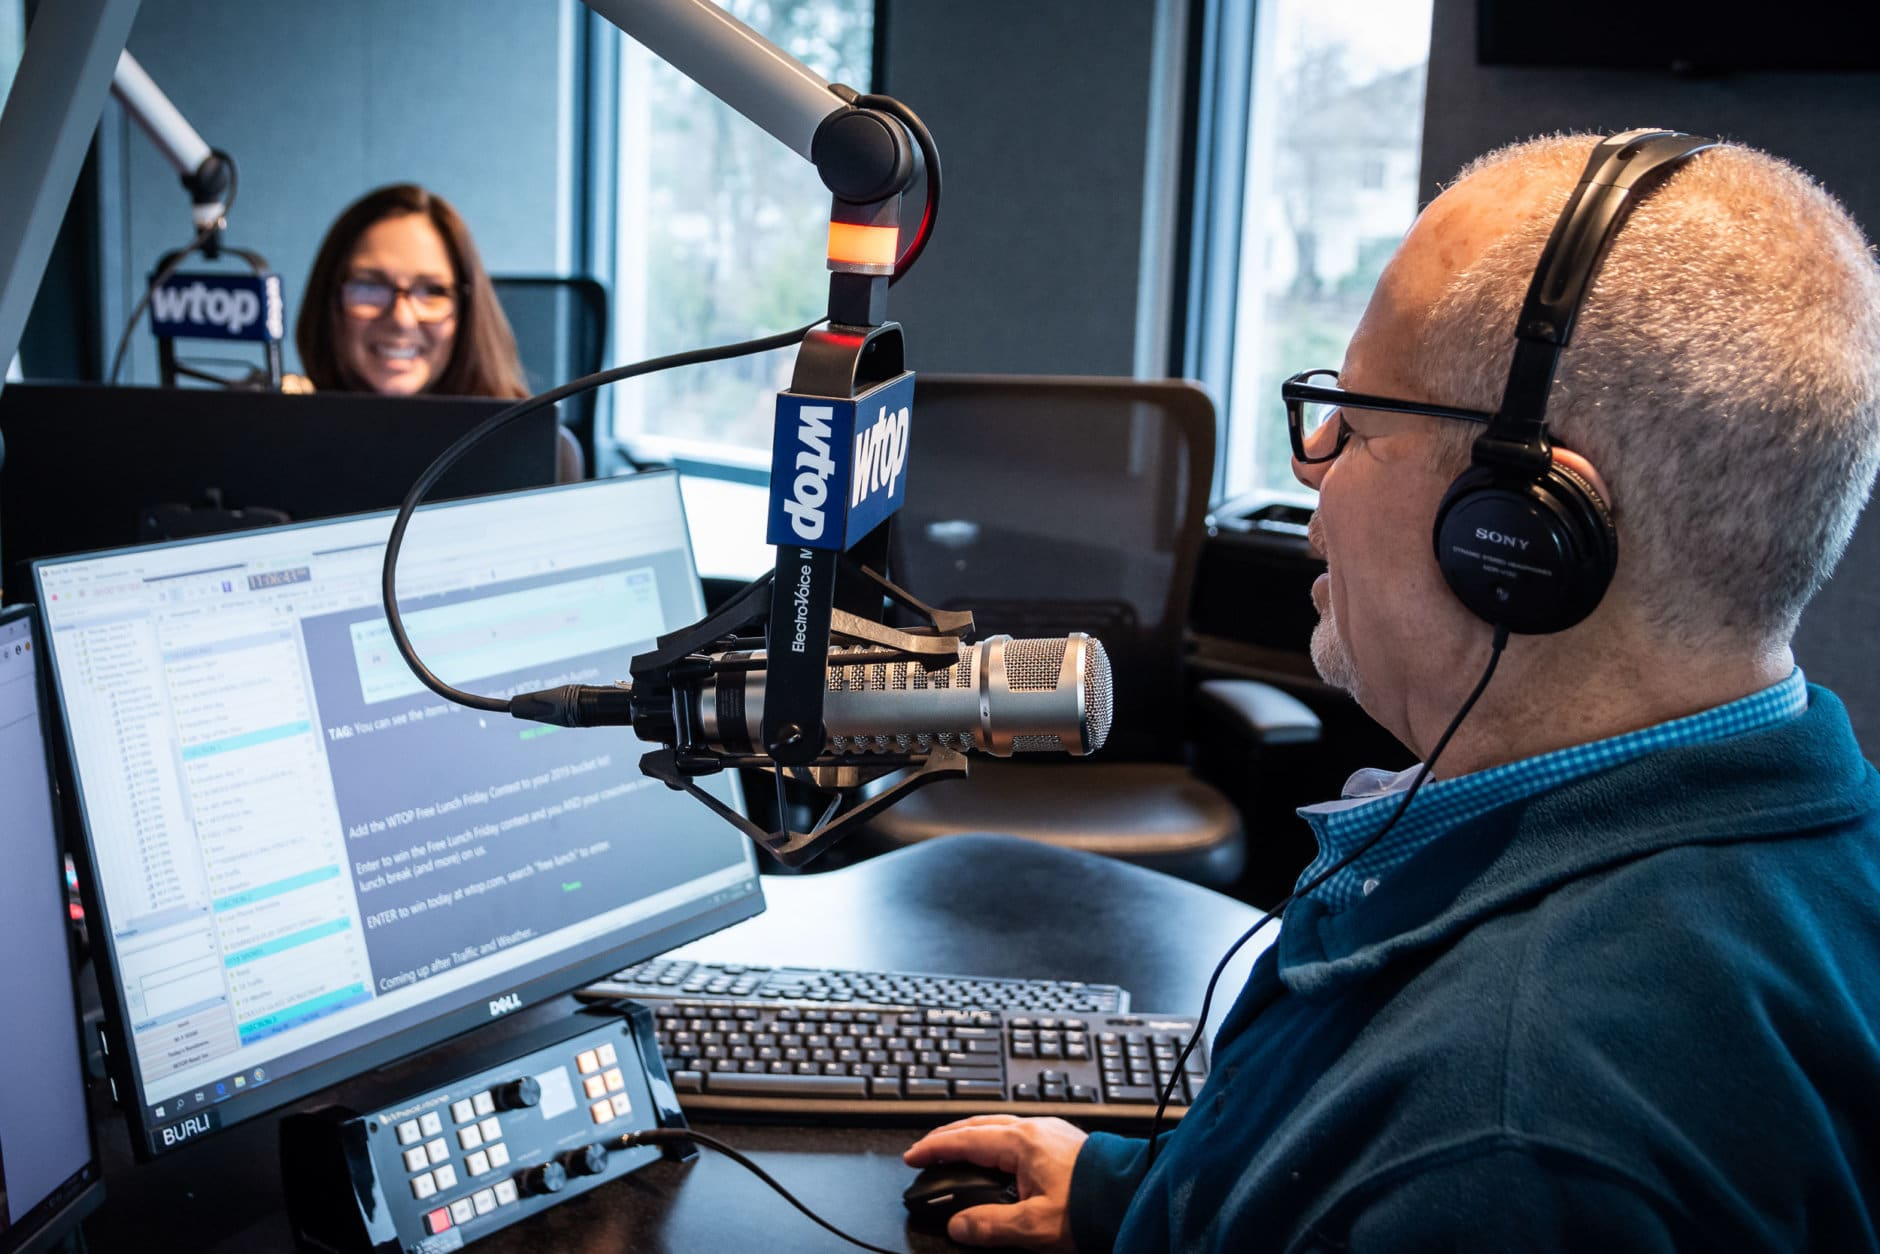 Morning anchors Joan Jones and Bruce Alan go through a dry run of a standard news broadcast using the Glass Enclosed Nerve Center's new equipment. WTOP's news and advertising management softwares also saw upgrades, and audio engineers trained anchors how to use the new technology in the days leading up to the move. (WTOP/Alejandro Alvarez)